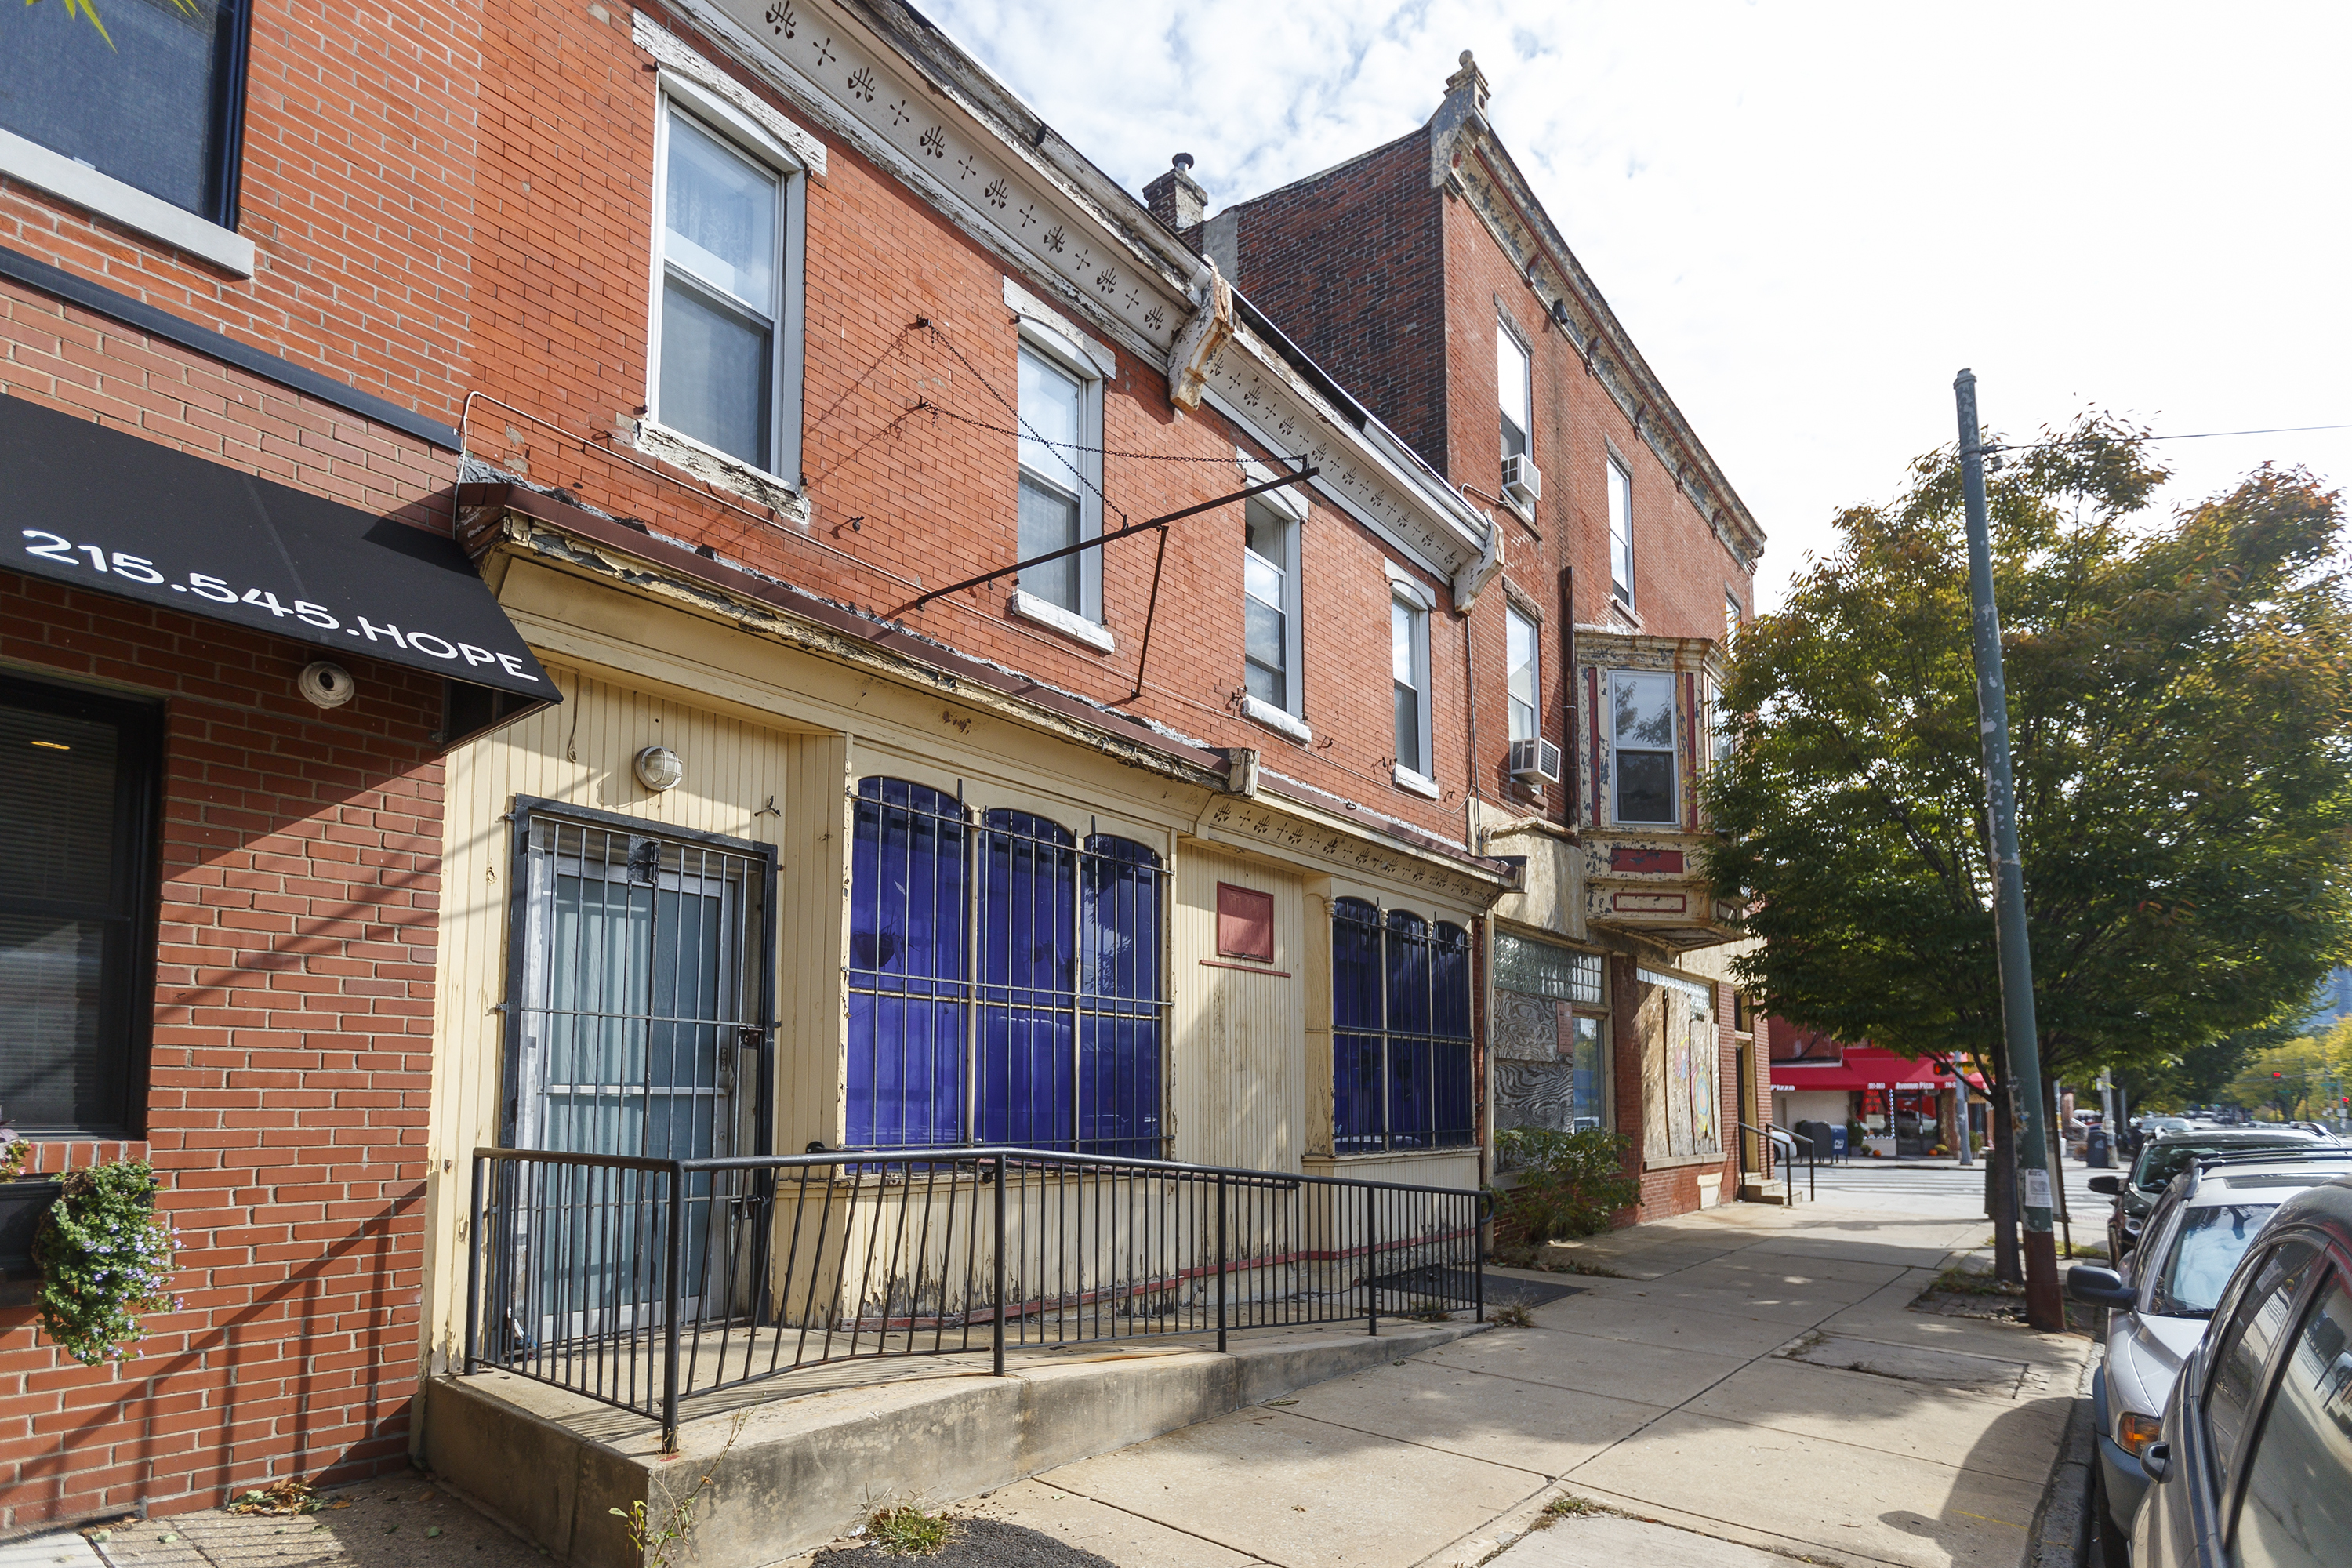 Kermit Gosnell´s clinic stretched from 3801-3805 Lancaster Ave. in West Philadelphia. The building